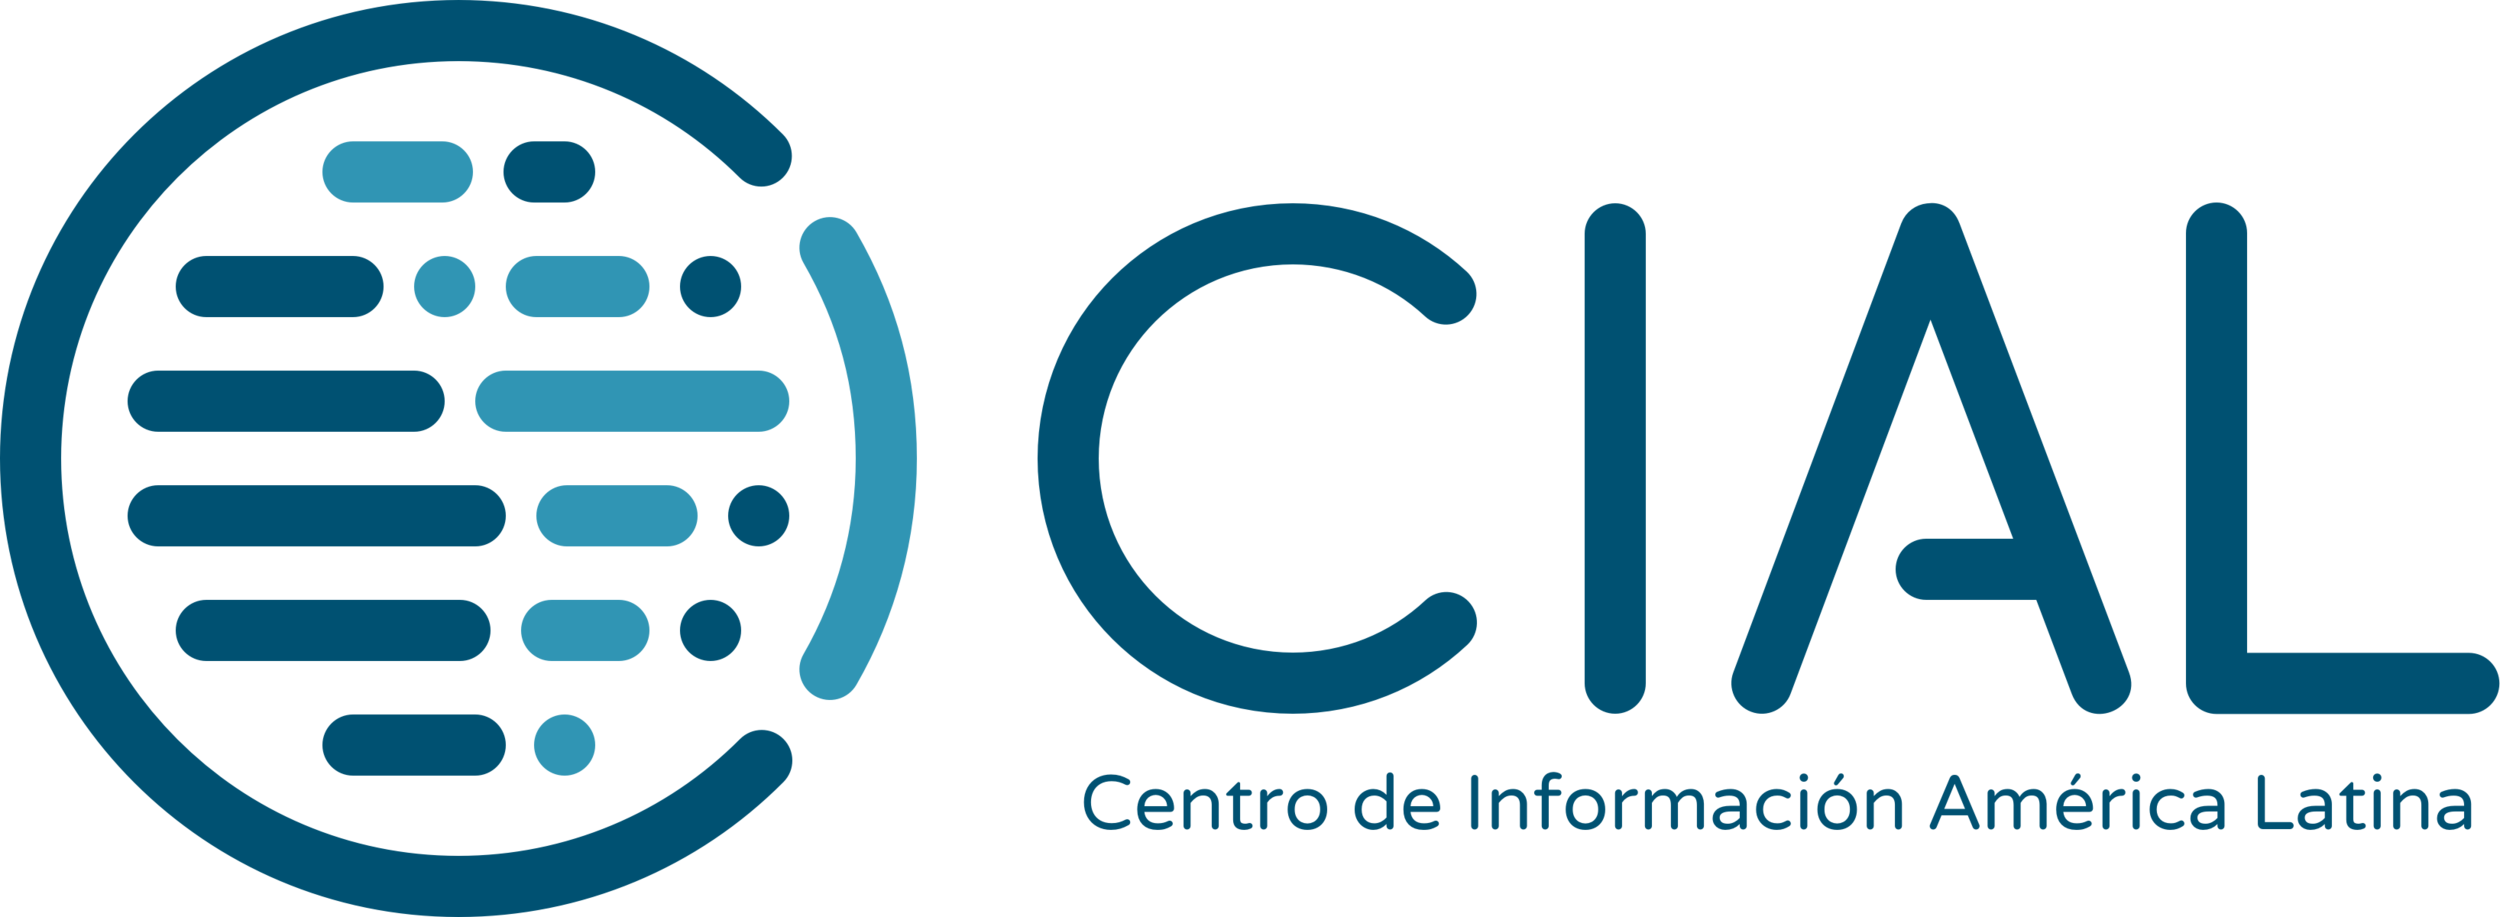 Cial_Spanish_Logo_Full (1).png